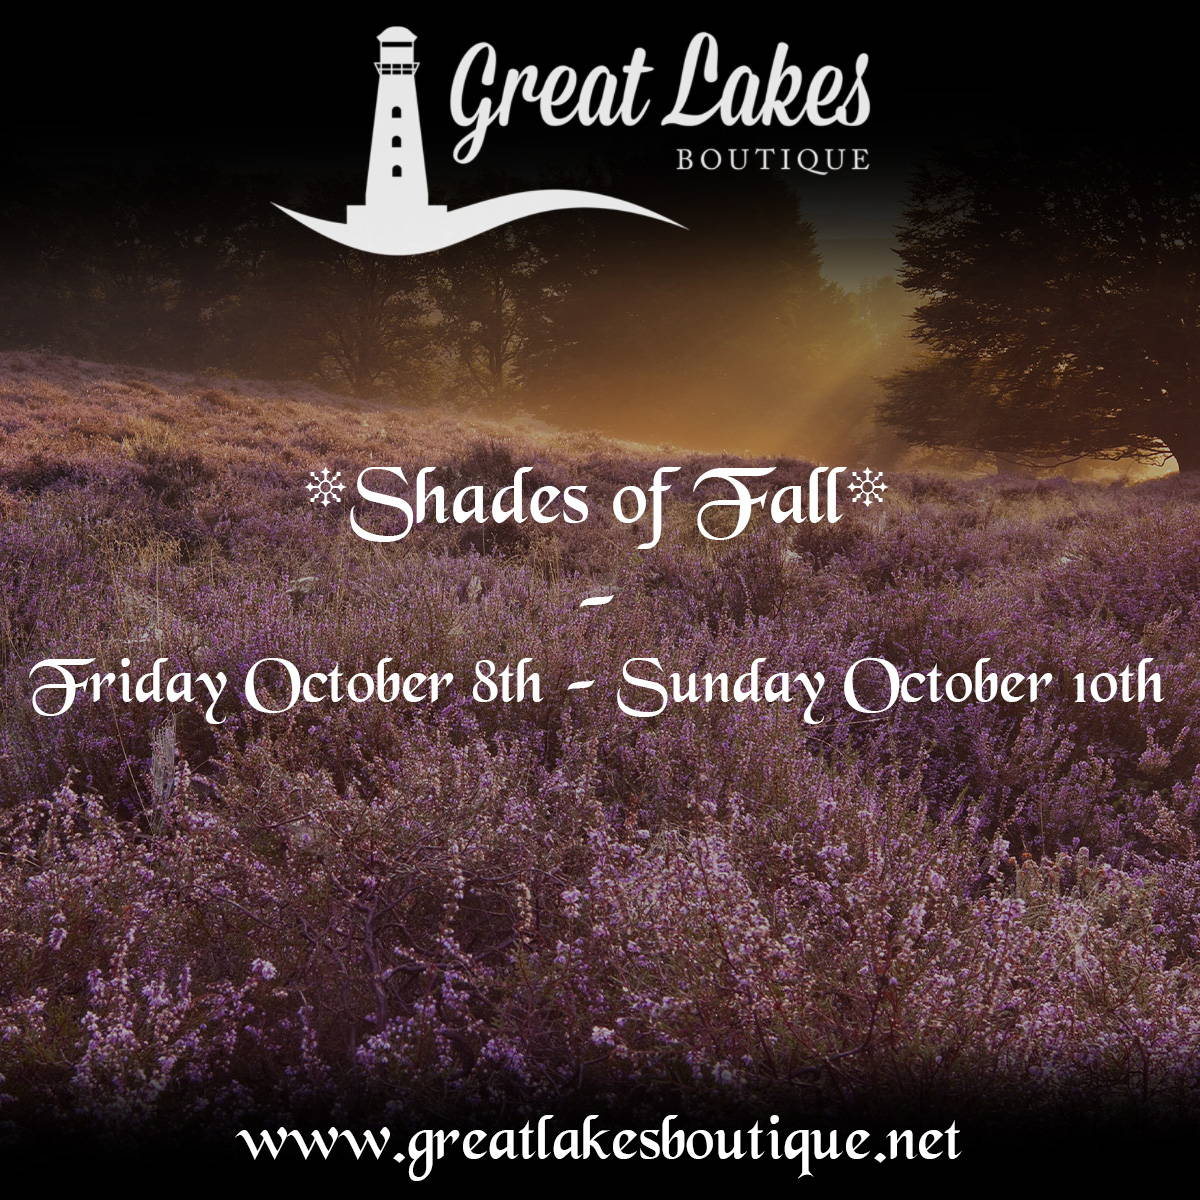 Great Lakes Boutique Shades of Fall